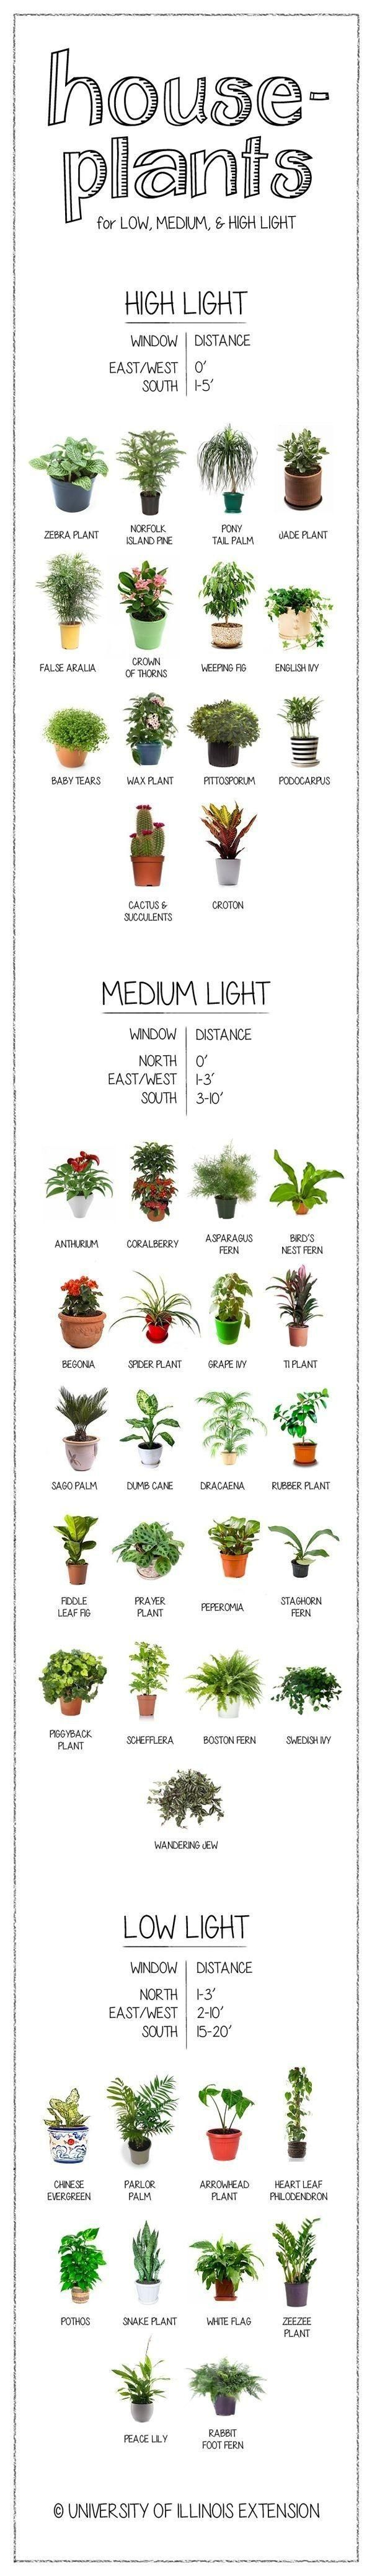 tiffany outlets So useful right now a visual guide to houseplants according to their need for light